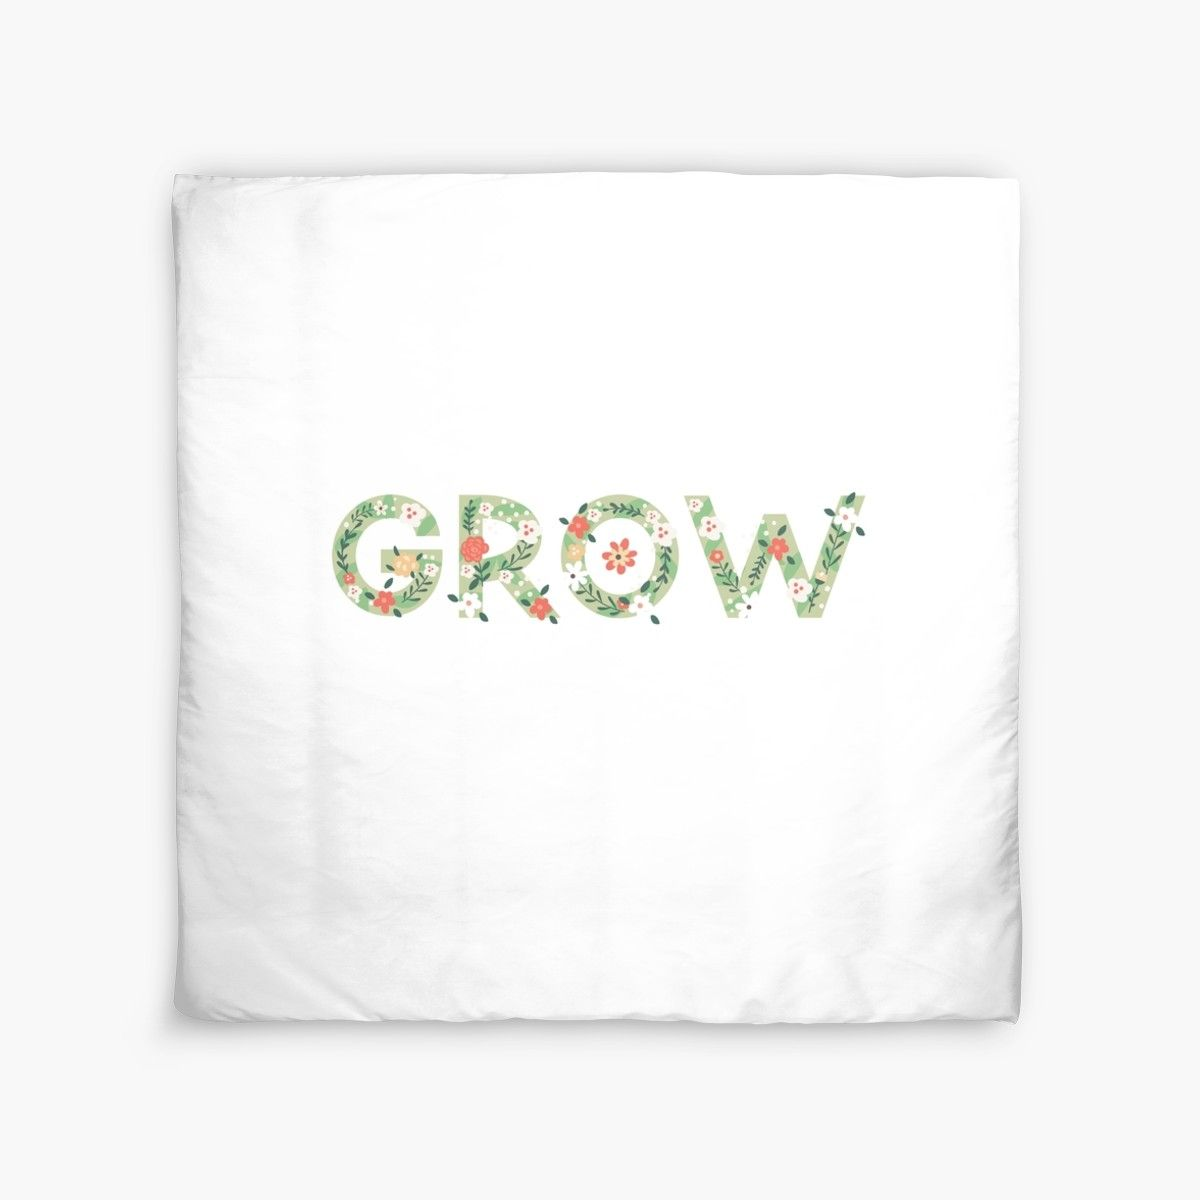 Get Ready For Spring And Summer With This Super Cute GROW Saying! Makes A  Great Gift For Family, Friends, Or Just Yourself! #floral #sayings Also  Enjoy This ...